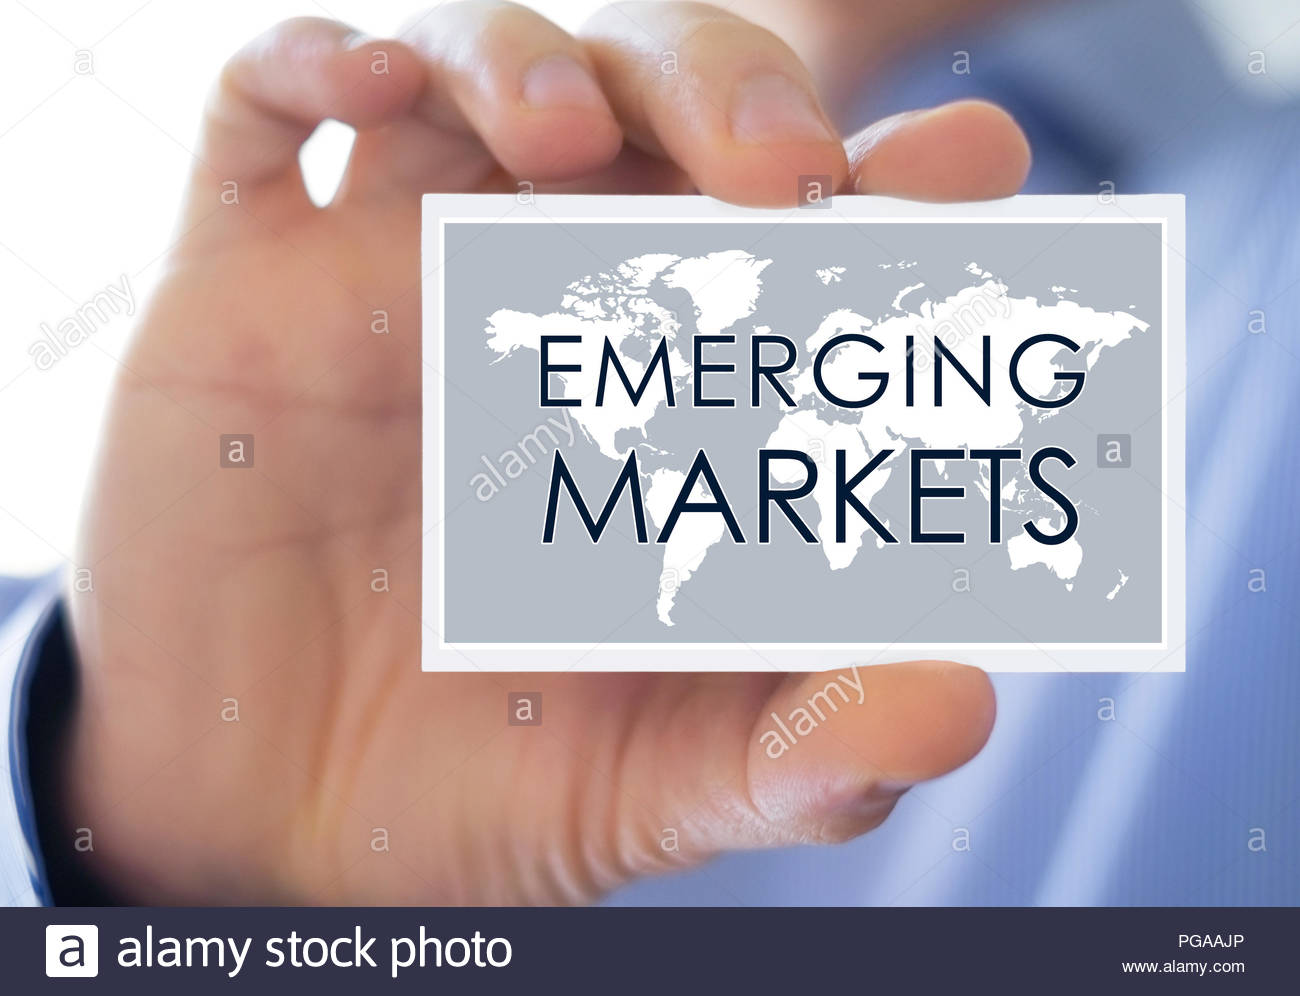 Emerging Markets - business concept - Stock Image